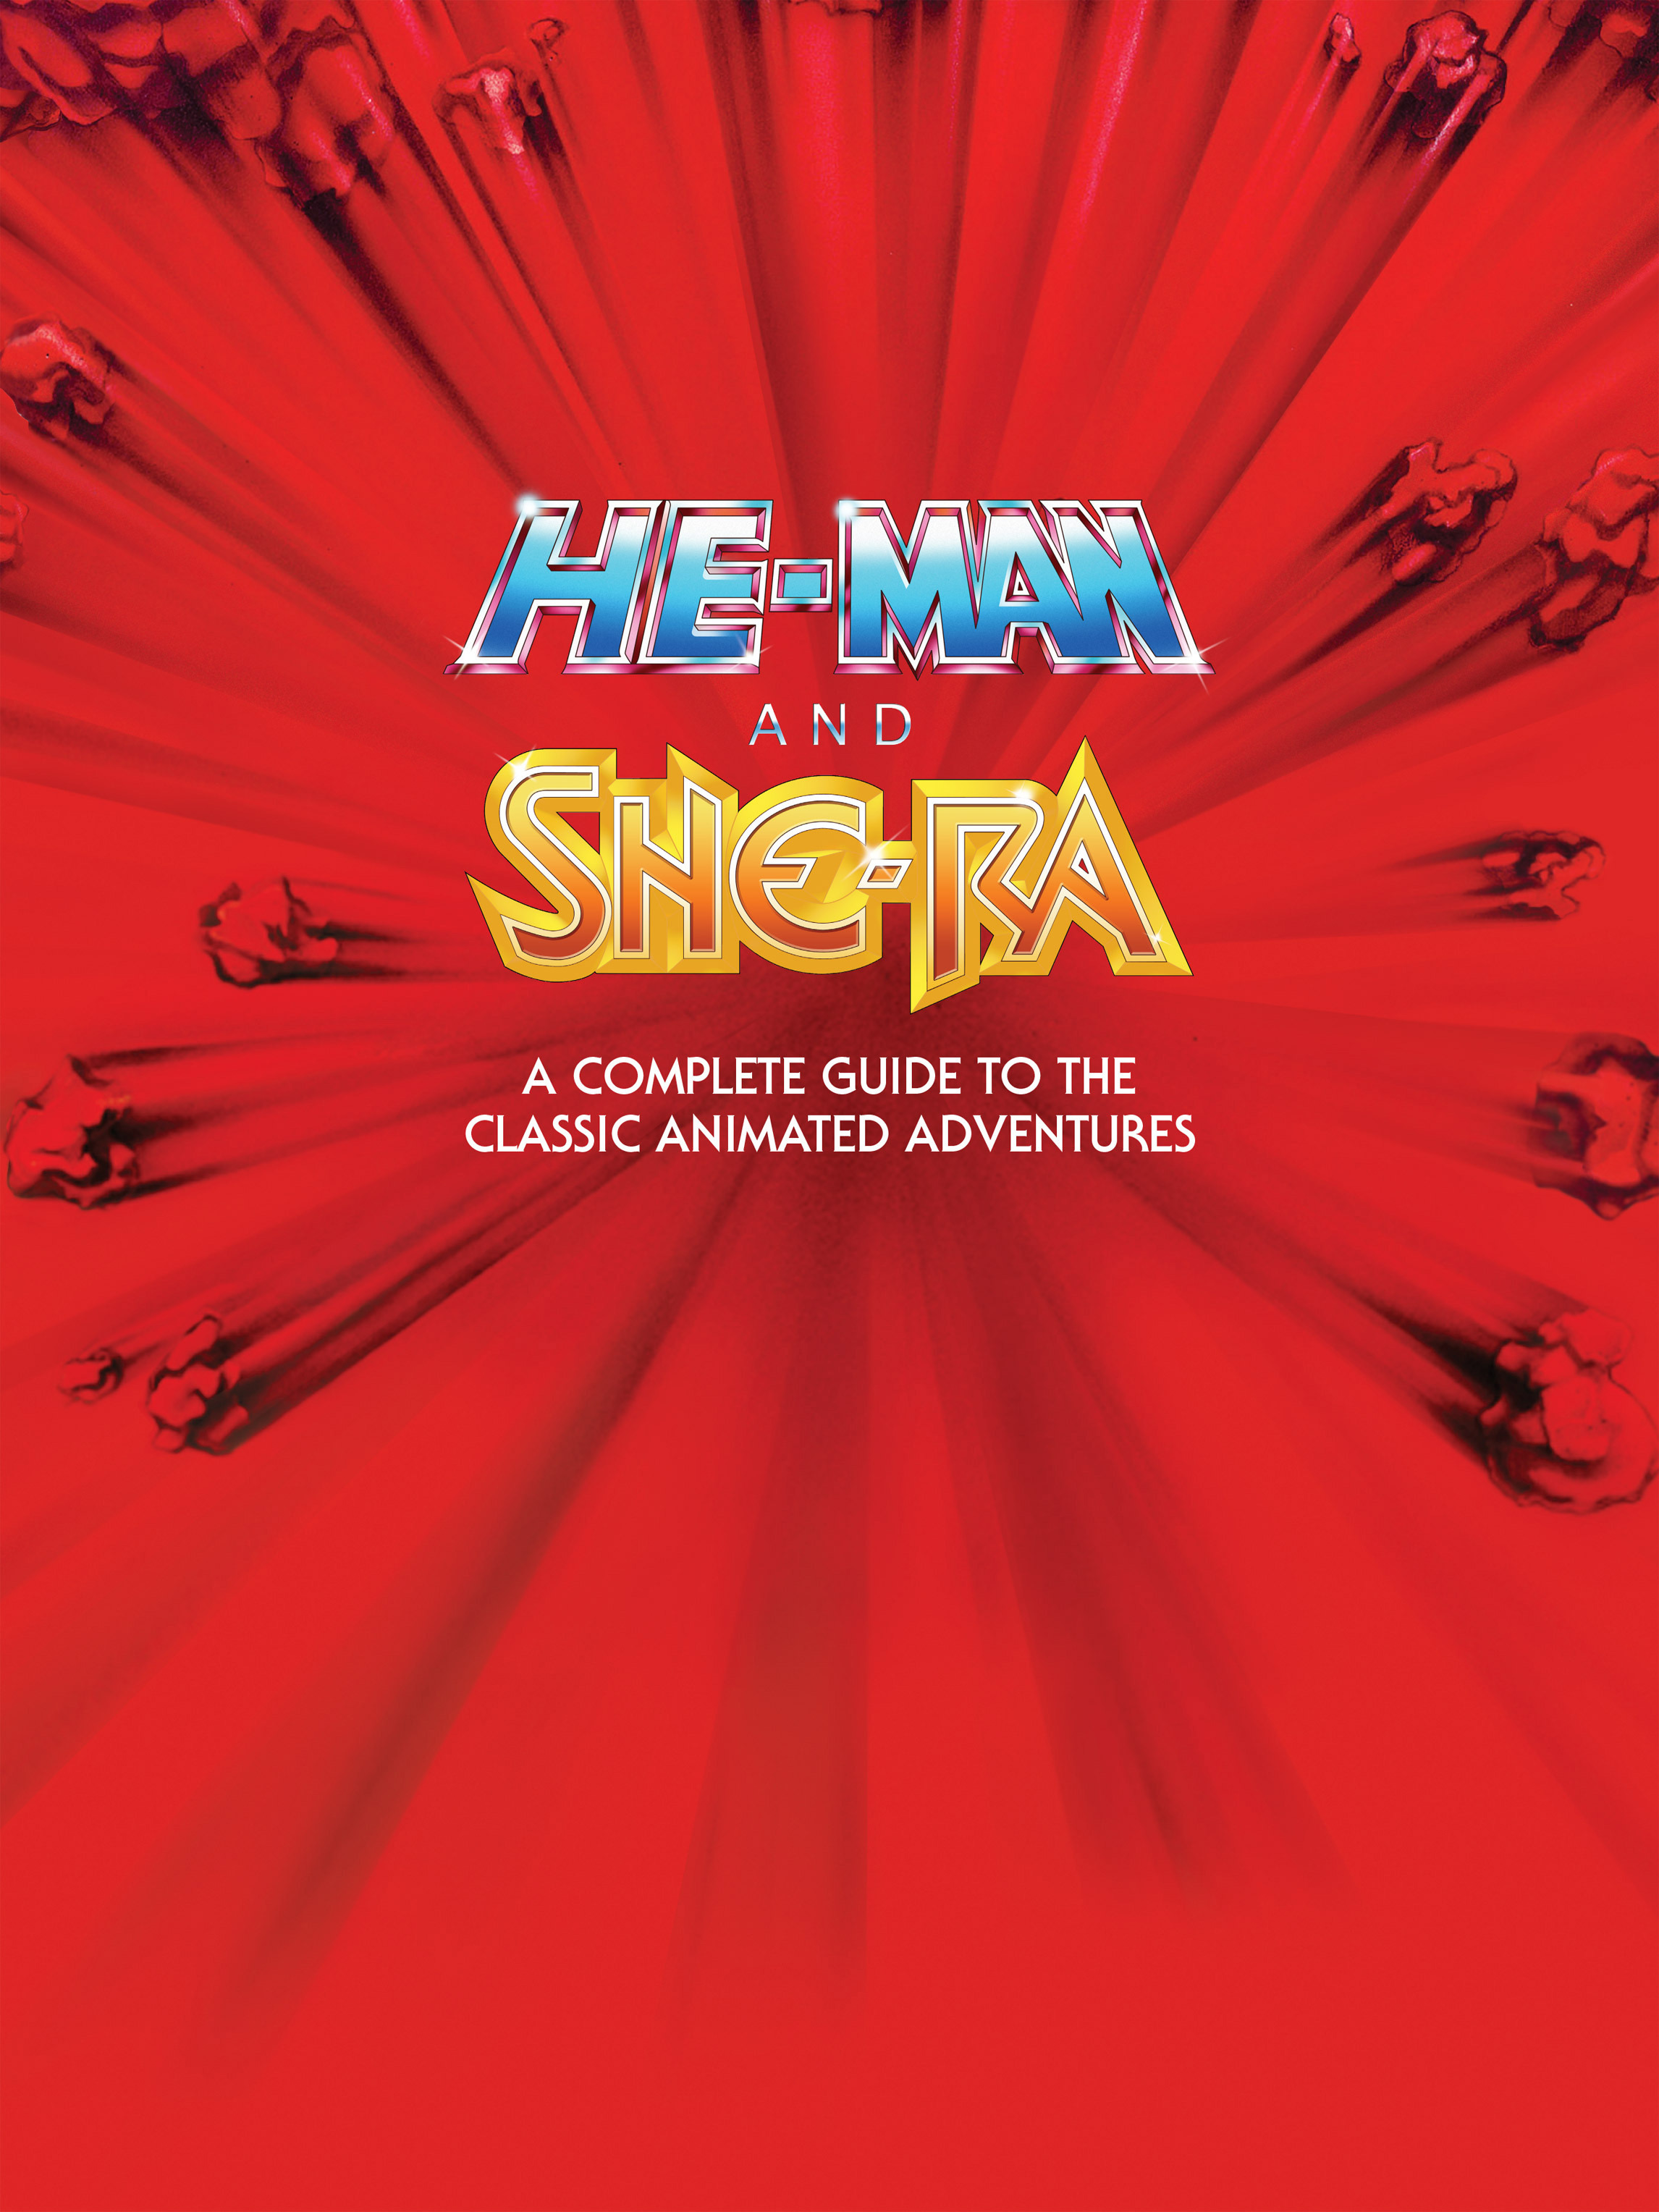 Read online He-Man and She-Ra: A Complete Guide to the Classic Animated Adventures comic -  Issue # TPB (Part 1) - 3